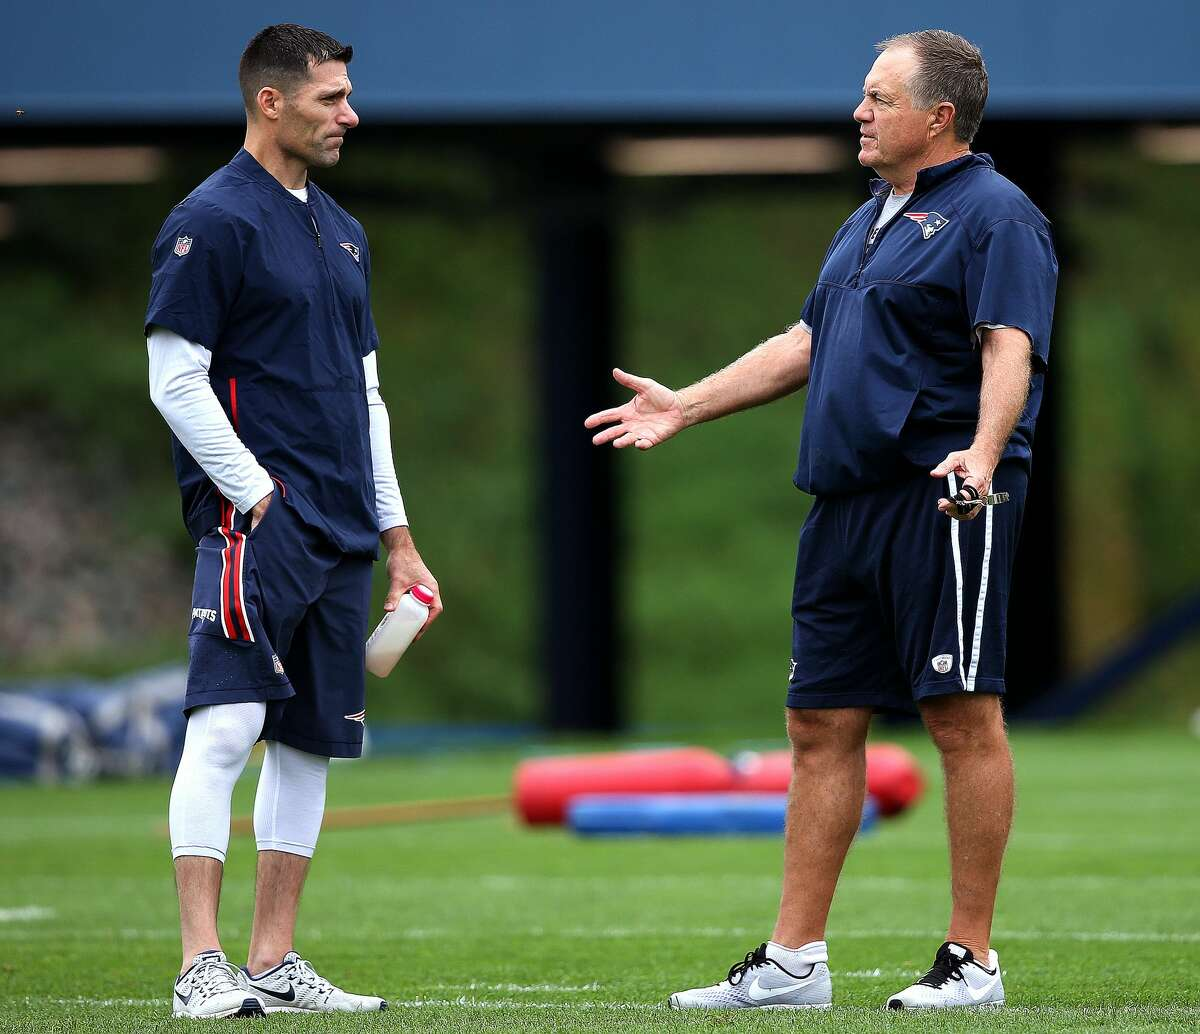 New England Patriots Director of Player Personnel Nick Caserio, left, stands with head coach Bill Belichick during New England Patriots practice at the Gillette Stadium practice facility in Foxborough, MA on Sep. 13, 2018.